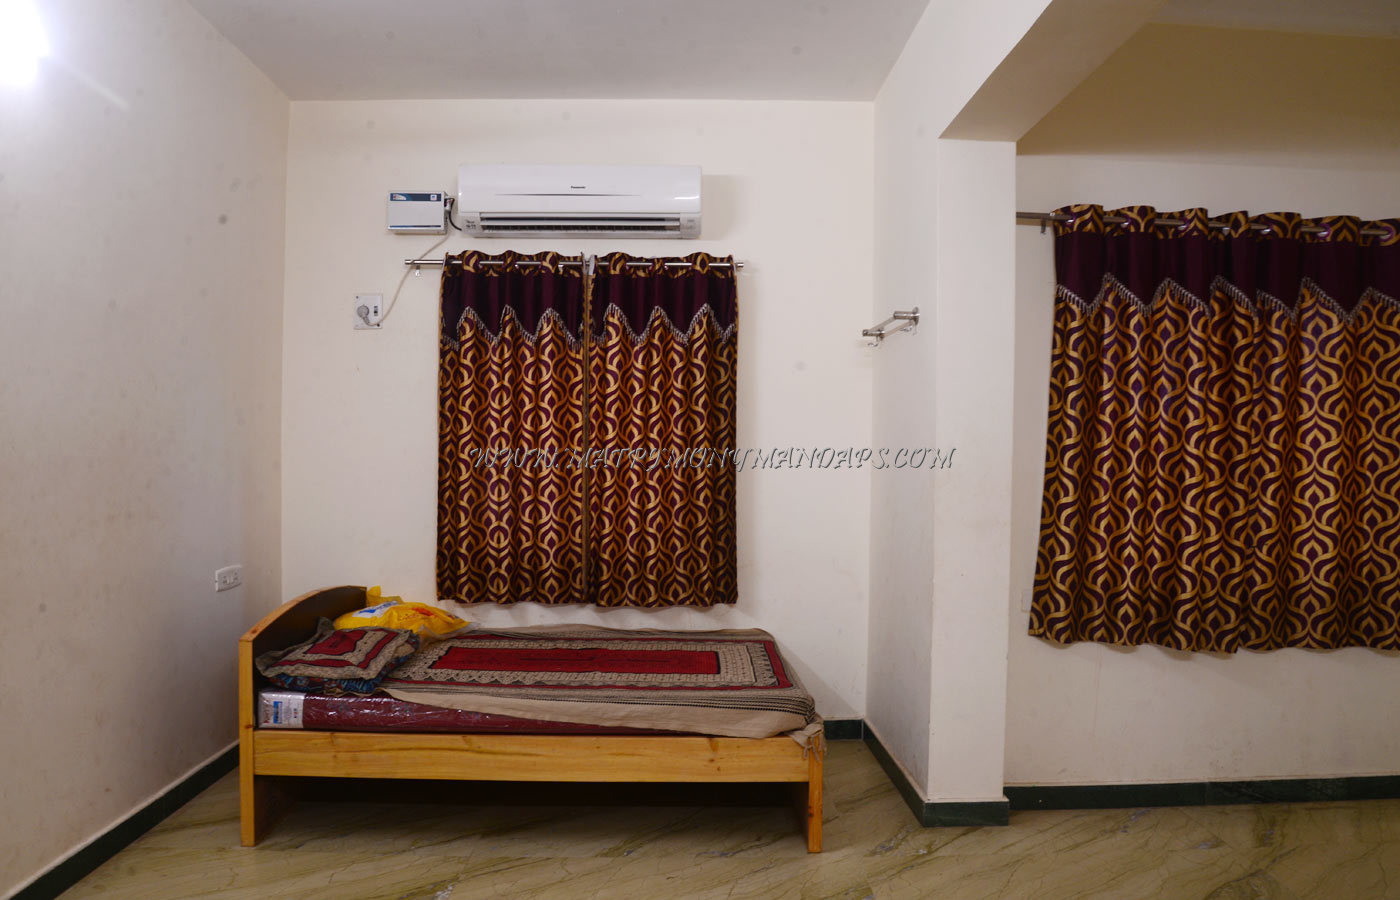 Find the availability of the Rajeshwari Navaraj Mahal (A/C) in Ambattur, Chennai and avail special offers